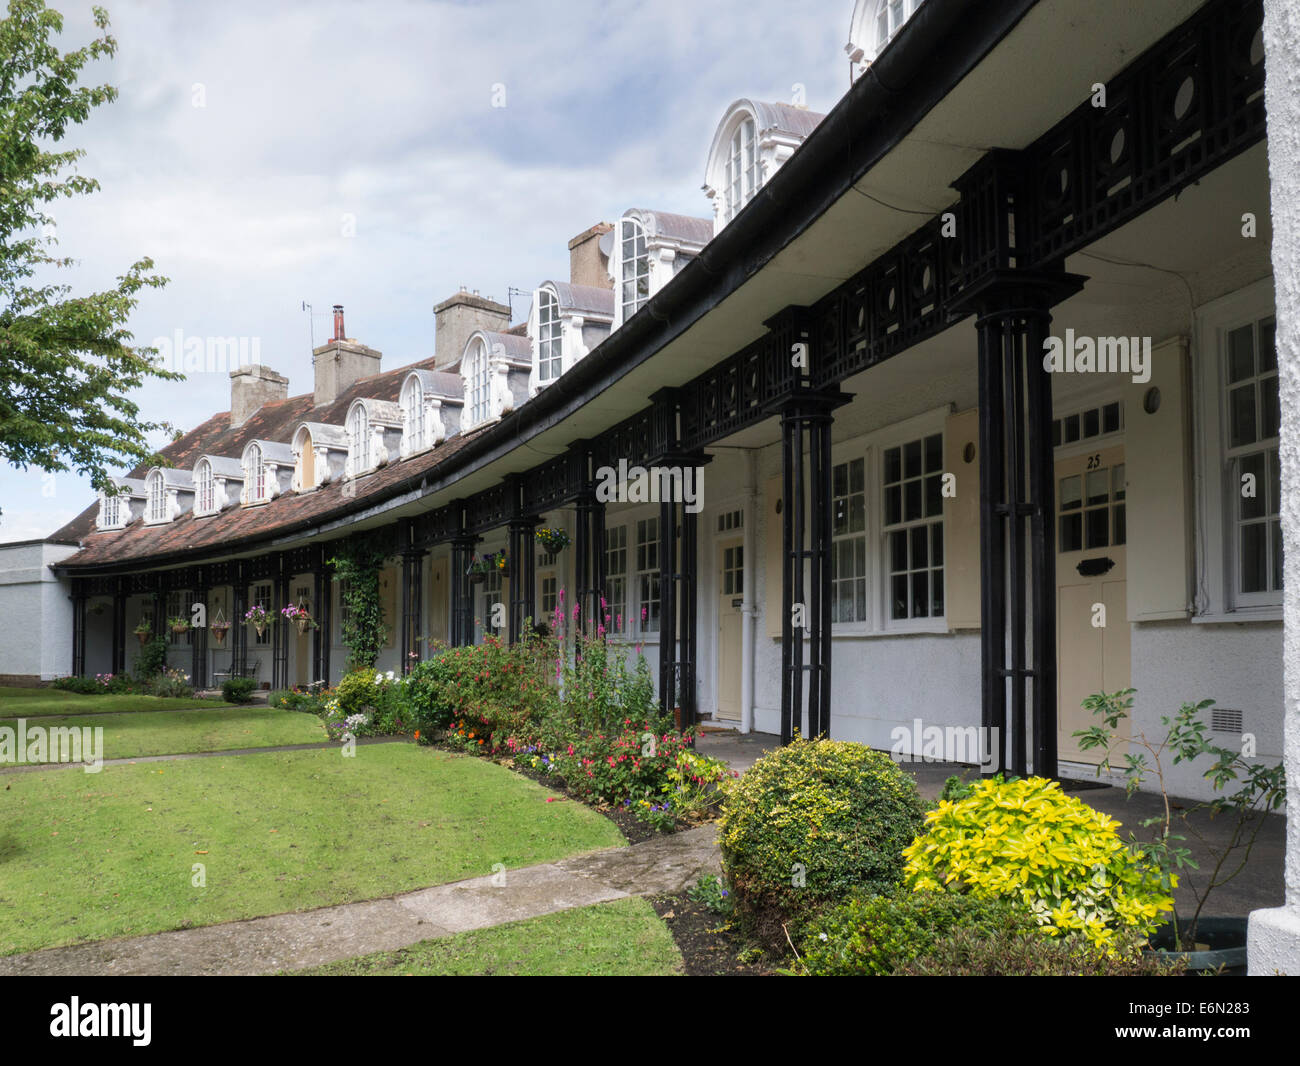 Port Sunlight  Wirral Merseyside England UK Many architectural styles Lever Brothers workers homes in model village - Stock Image